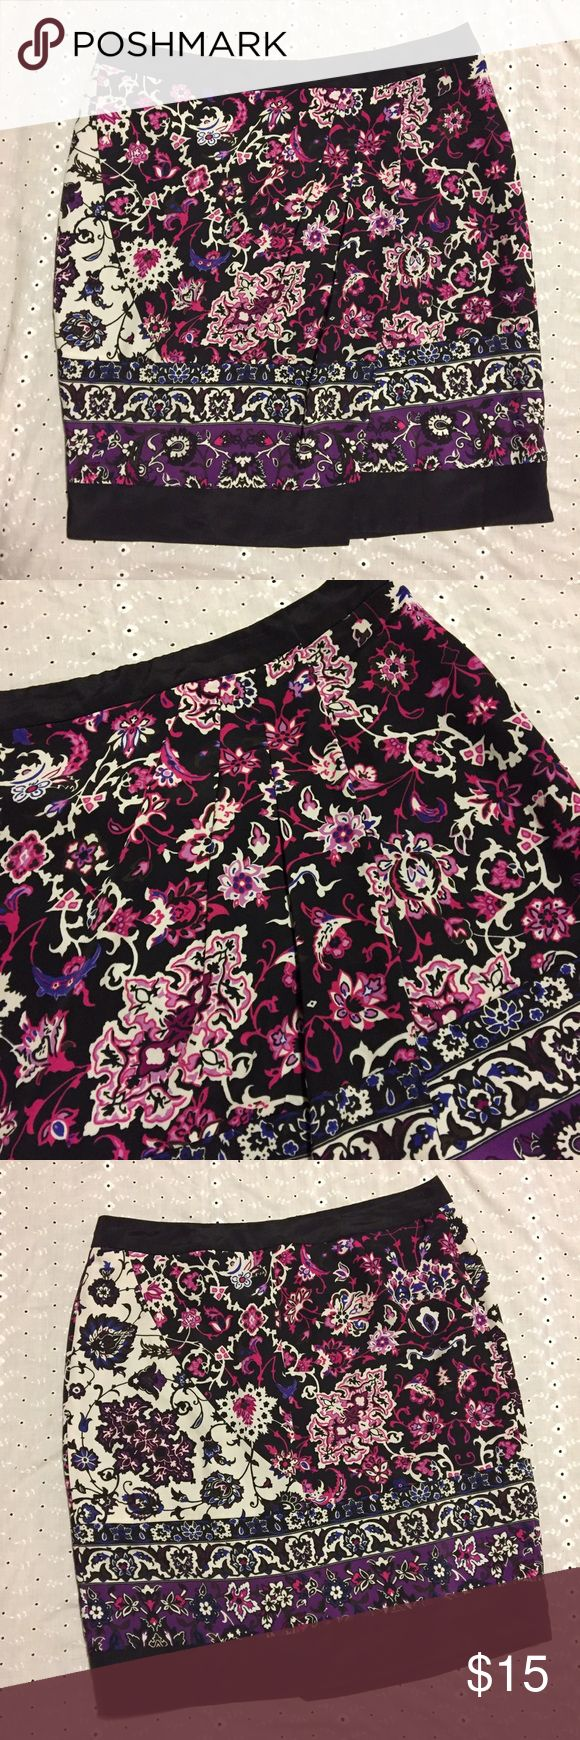 """New York and Company Floral Wrap Skirt! Beautiful floral wrap skirt from New York and Company! Has pleats along the top which make the skirt lie beautifully! Colors include black, white, purple, navy, magenta, and white! Would make a great addition to a career wardrobe! Size 10! Waist is 16.5"""" lying flat, length is 23""""! Perfect condition! New York & Company Skirts Pencil"""